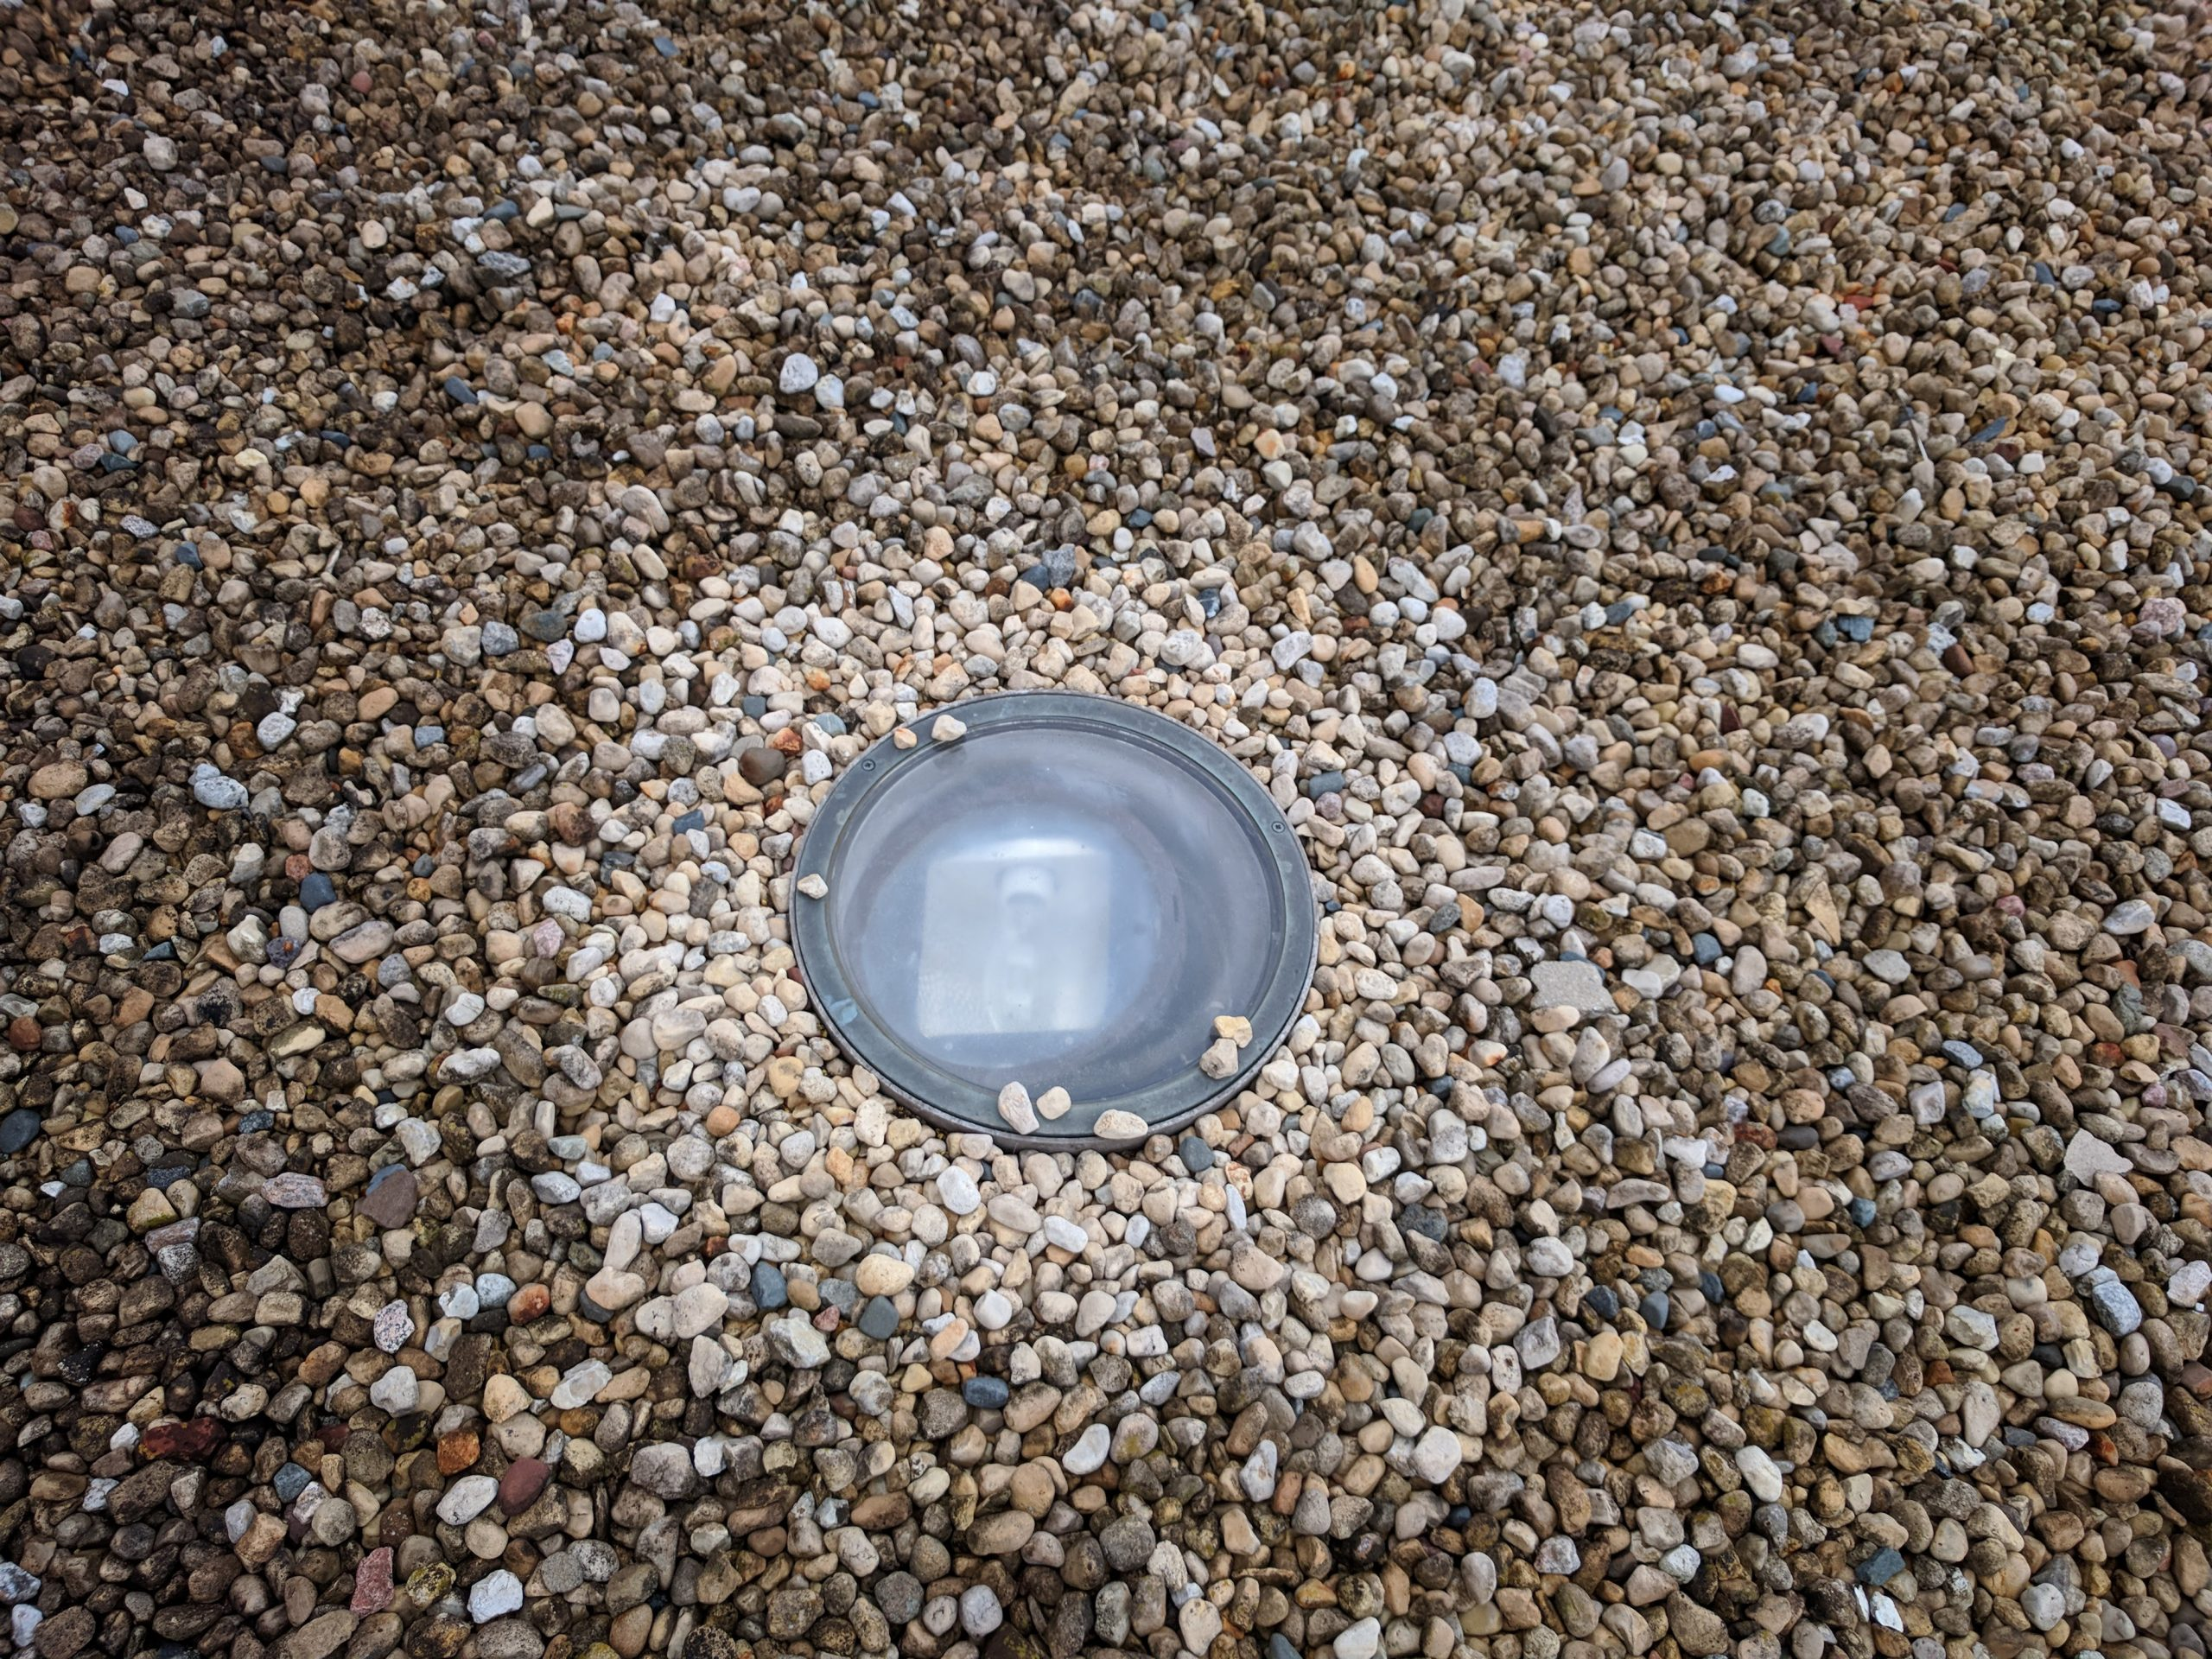 This light outside the Ramsey Auditorium warms and dries the gravel around it on a recent damp morning. Photo: Jason St. John, everyday objects